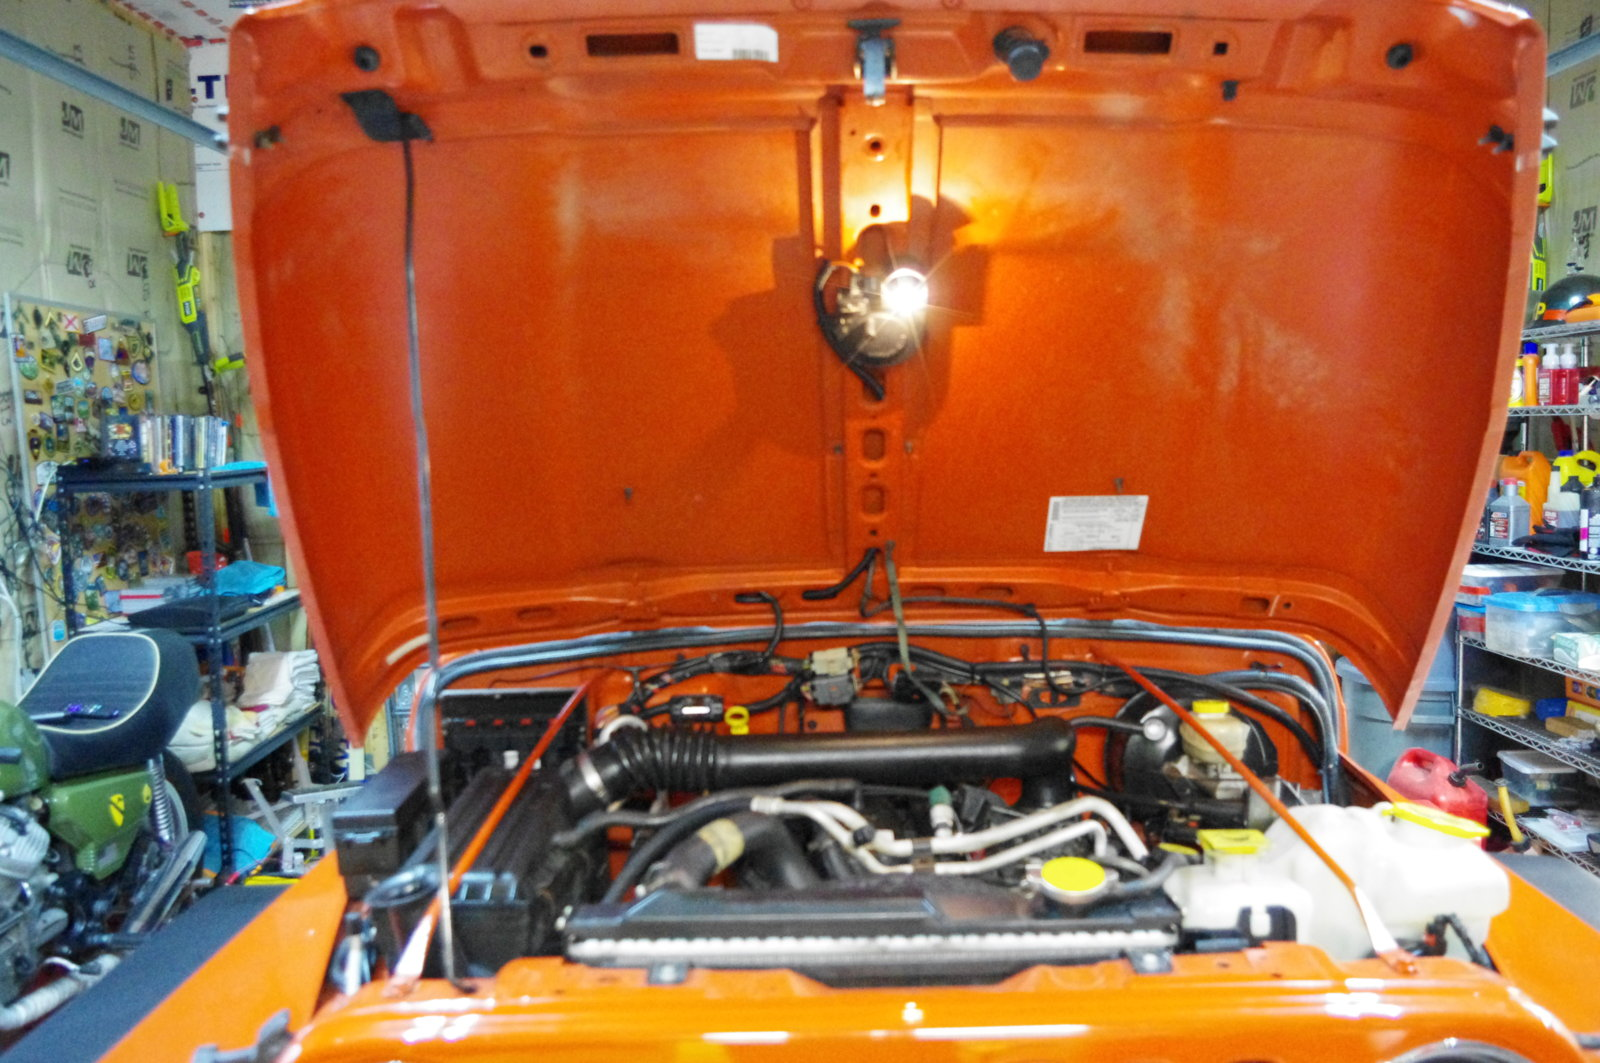 Upgrading The Underhood Light Jeep Wrangler Tj Forum 1997 Under Hood Wiring Diagram View Attachment 28499